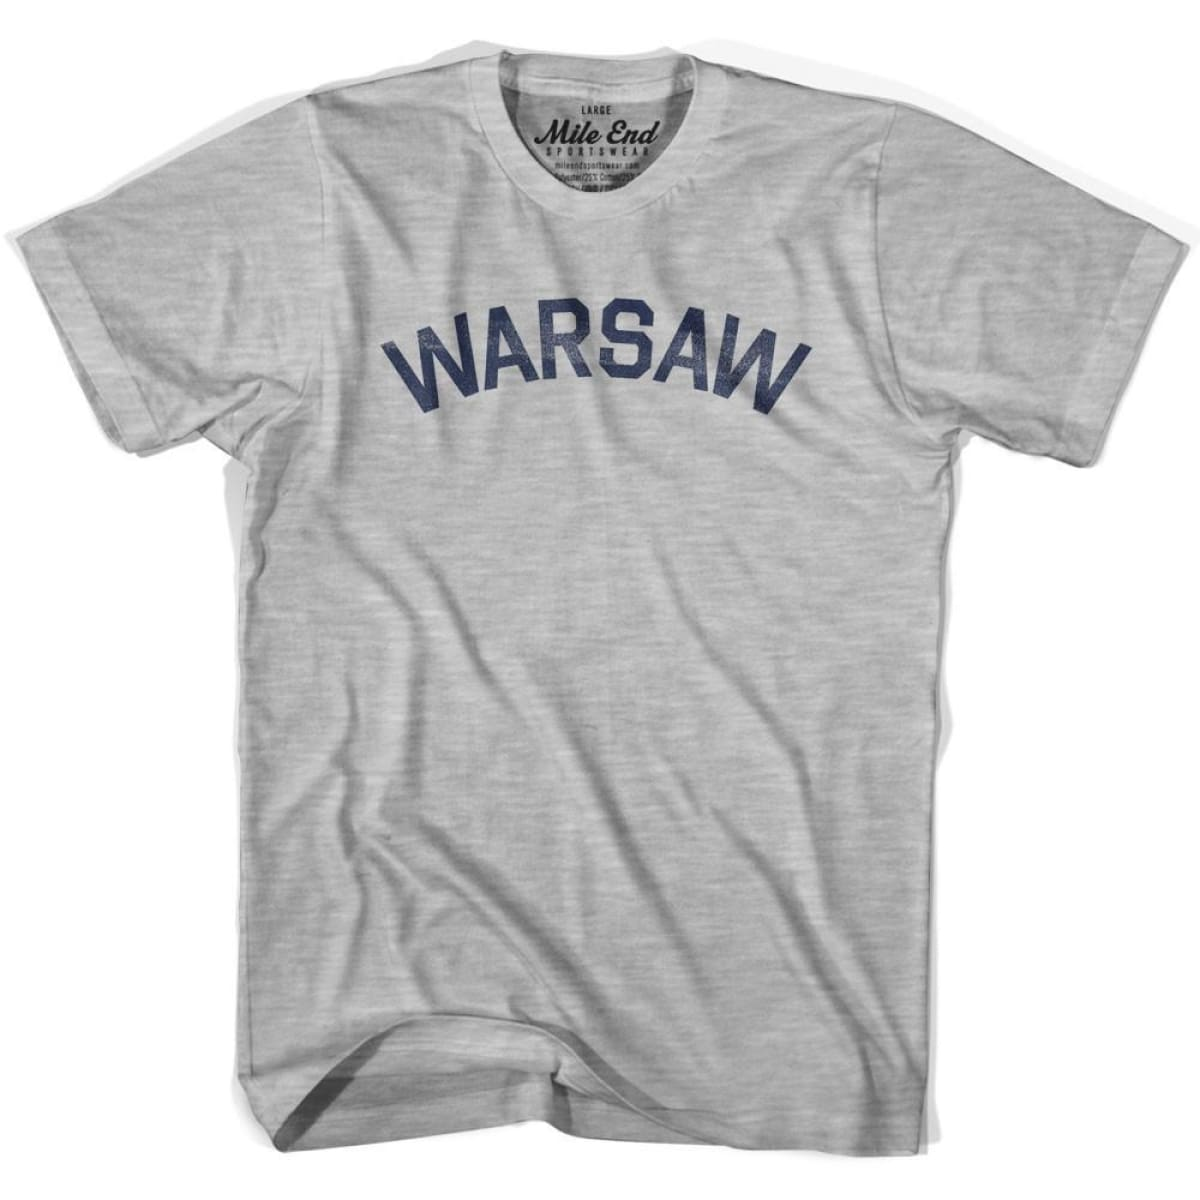 Warsaw City Vintage T-shirt - Grey Heather / Youth X-Small - Mile End City